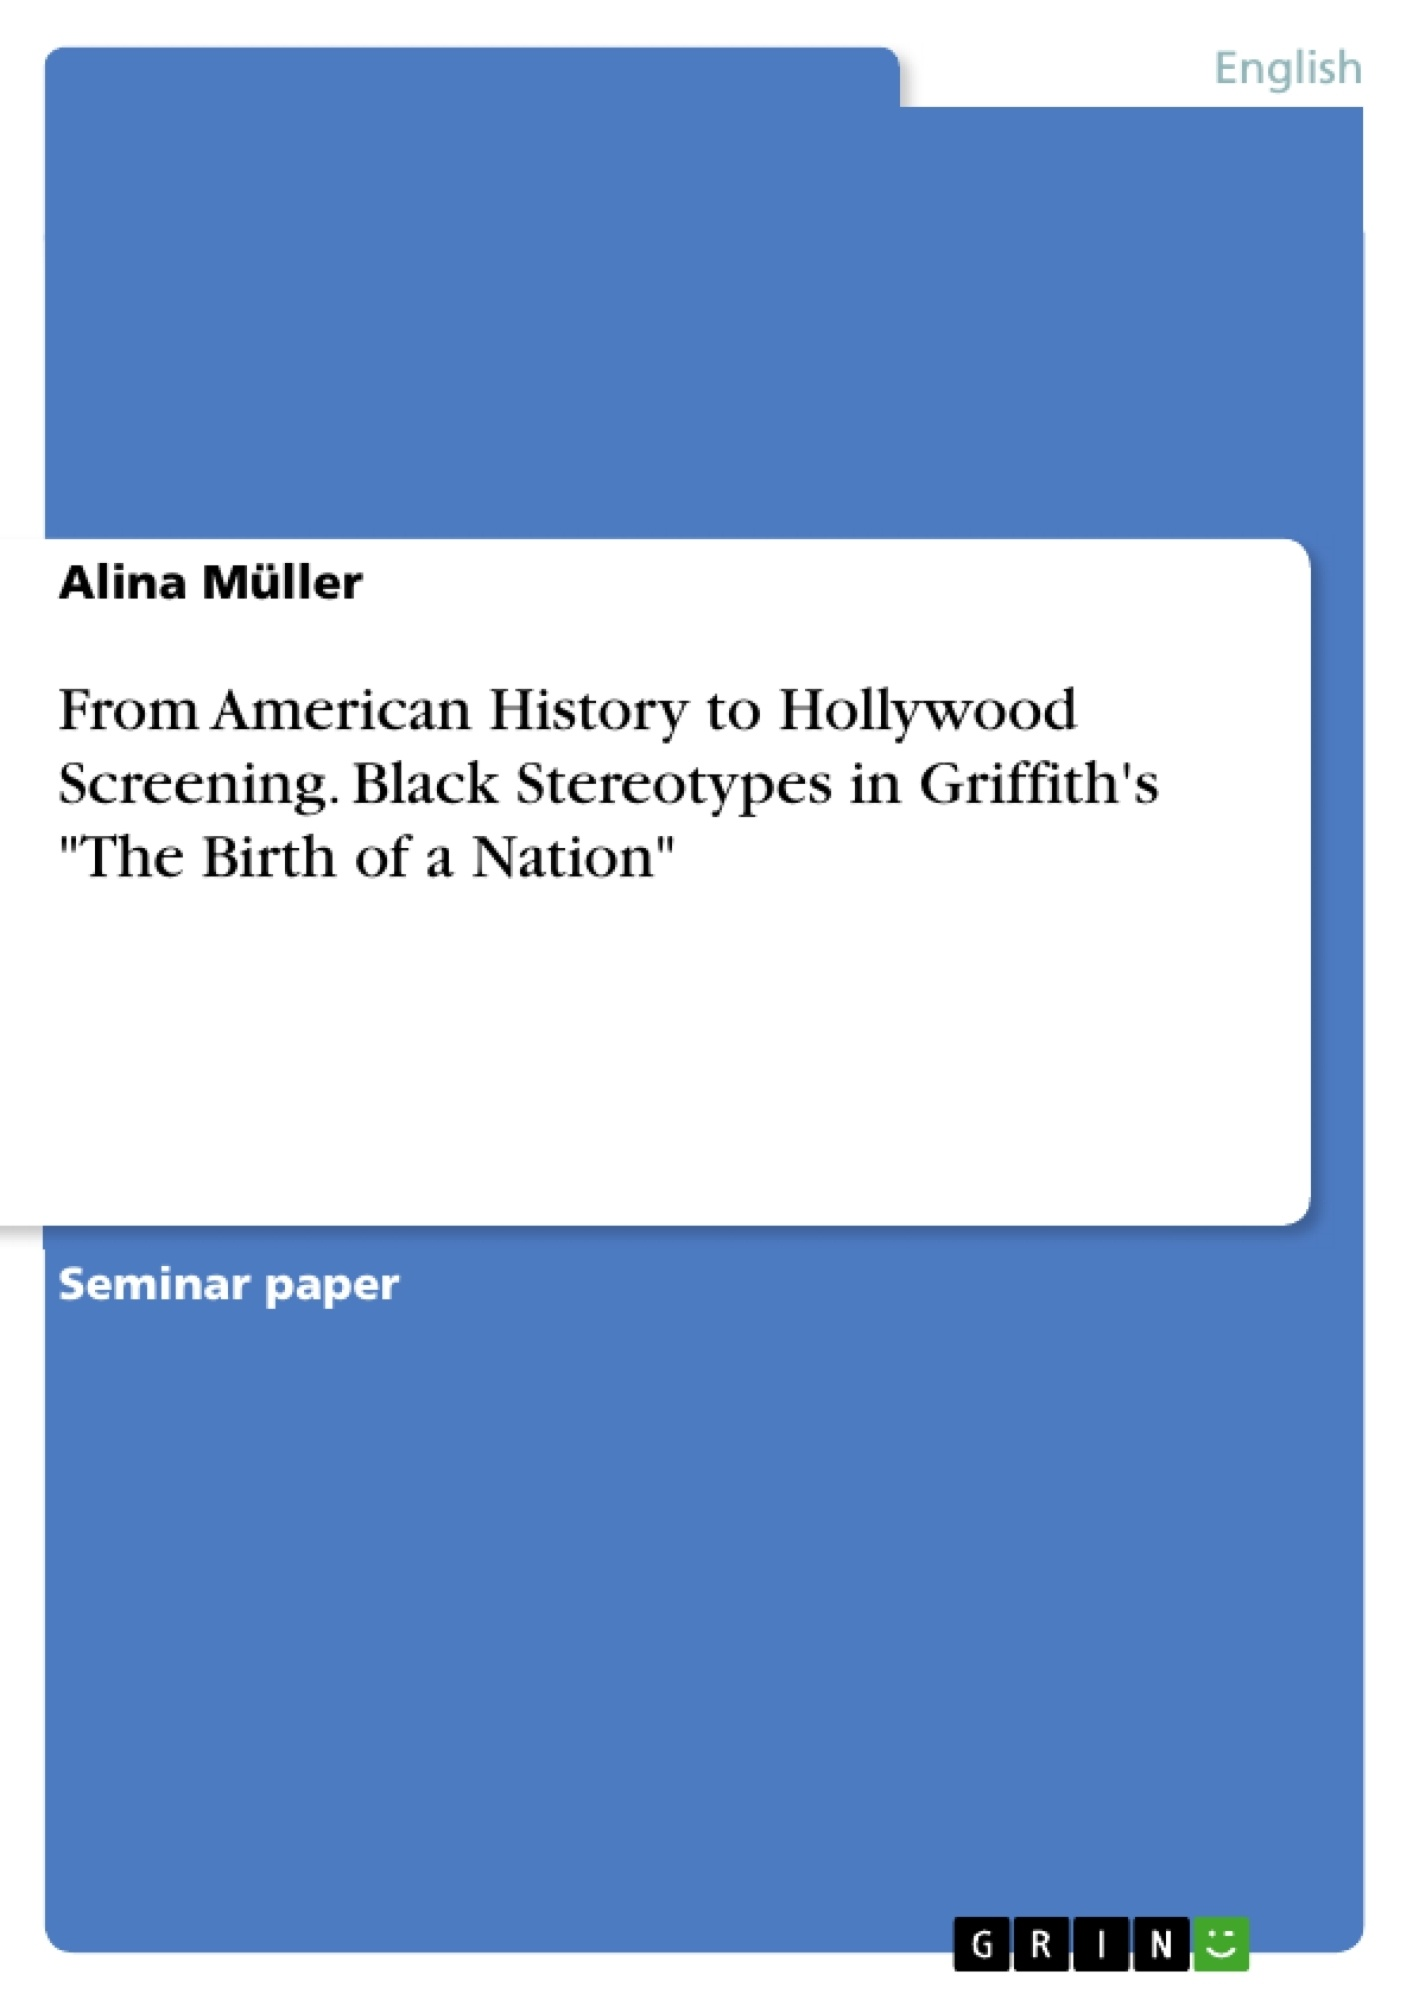 """Title: From American History to Hollywood Screening. Black Stereotypes in Griffith's """"The Birth of a Nation"""""""